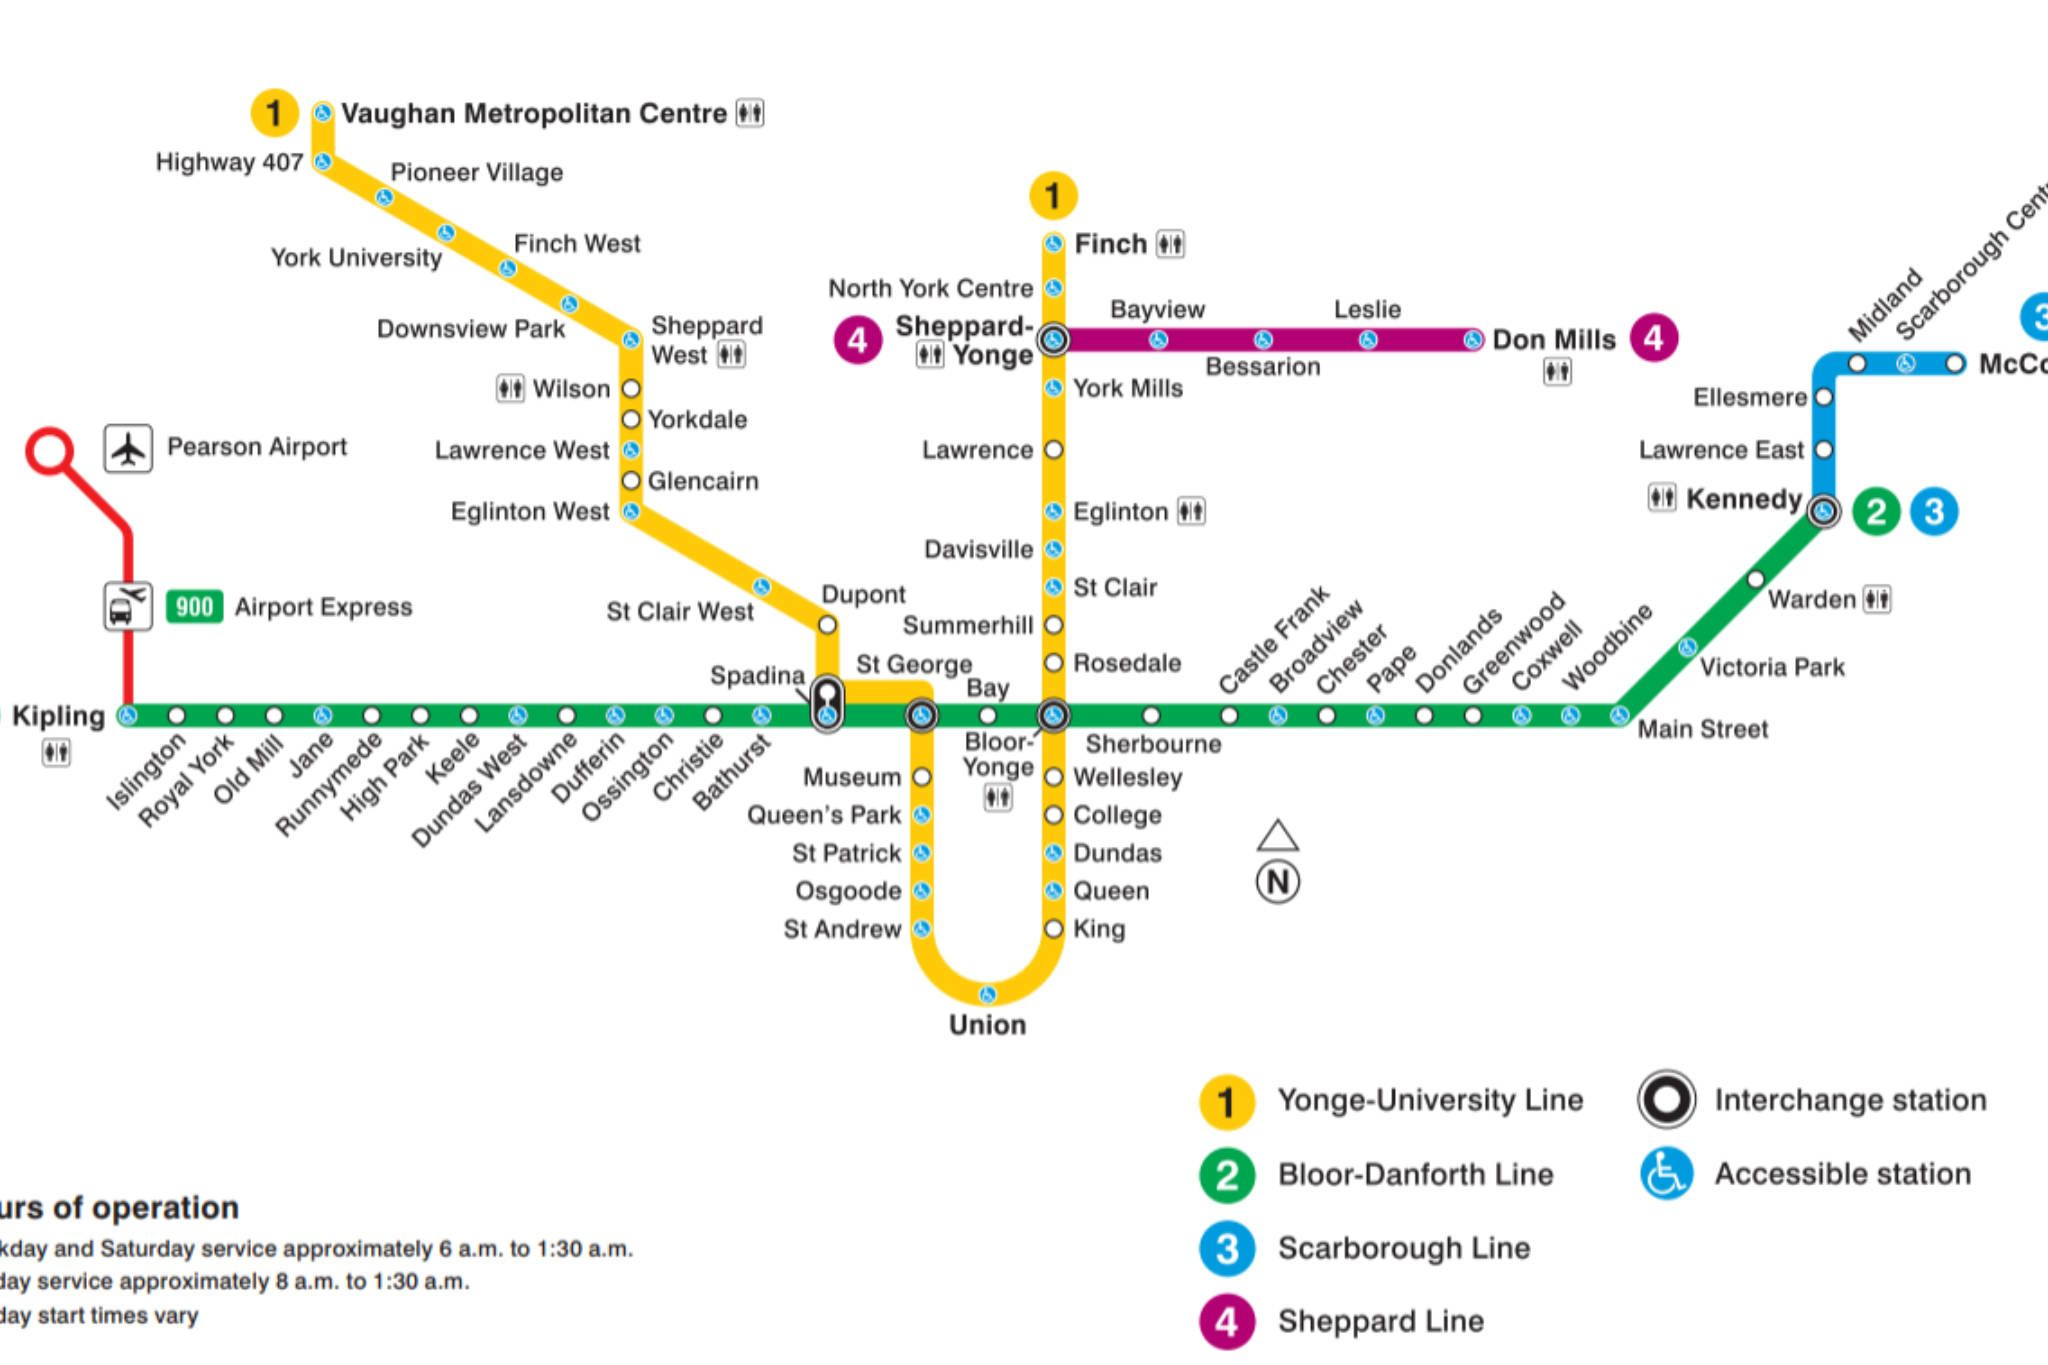 Subway Map Toronto Canada.Ttc Subway Map 2019 Blogto Subway Map Nyc Subway Map Toronto Subway